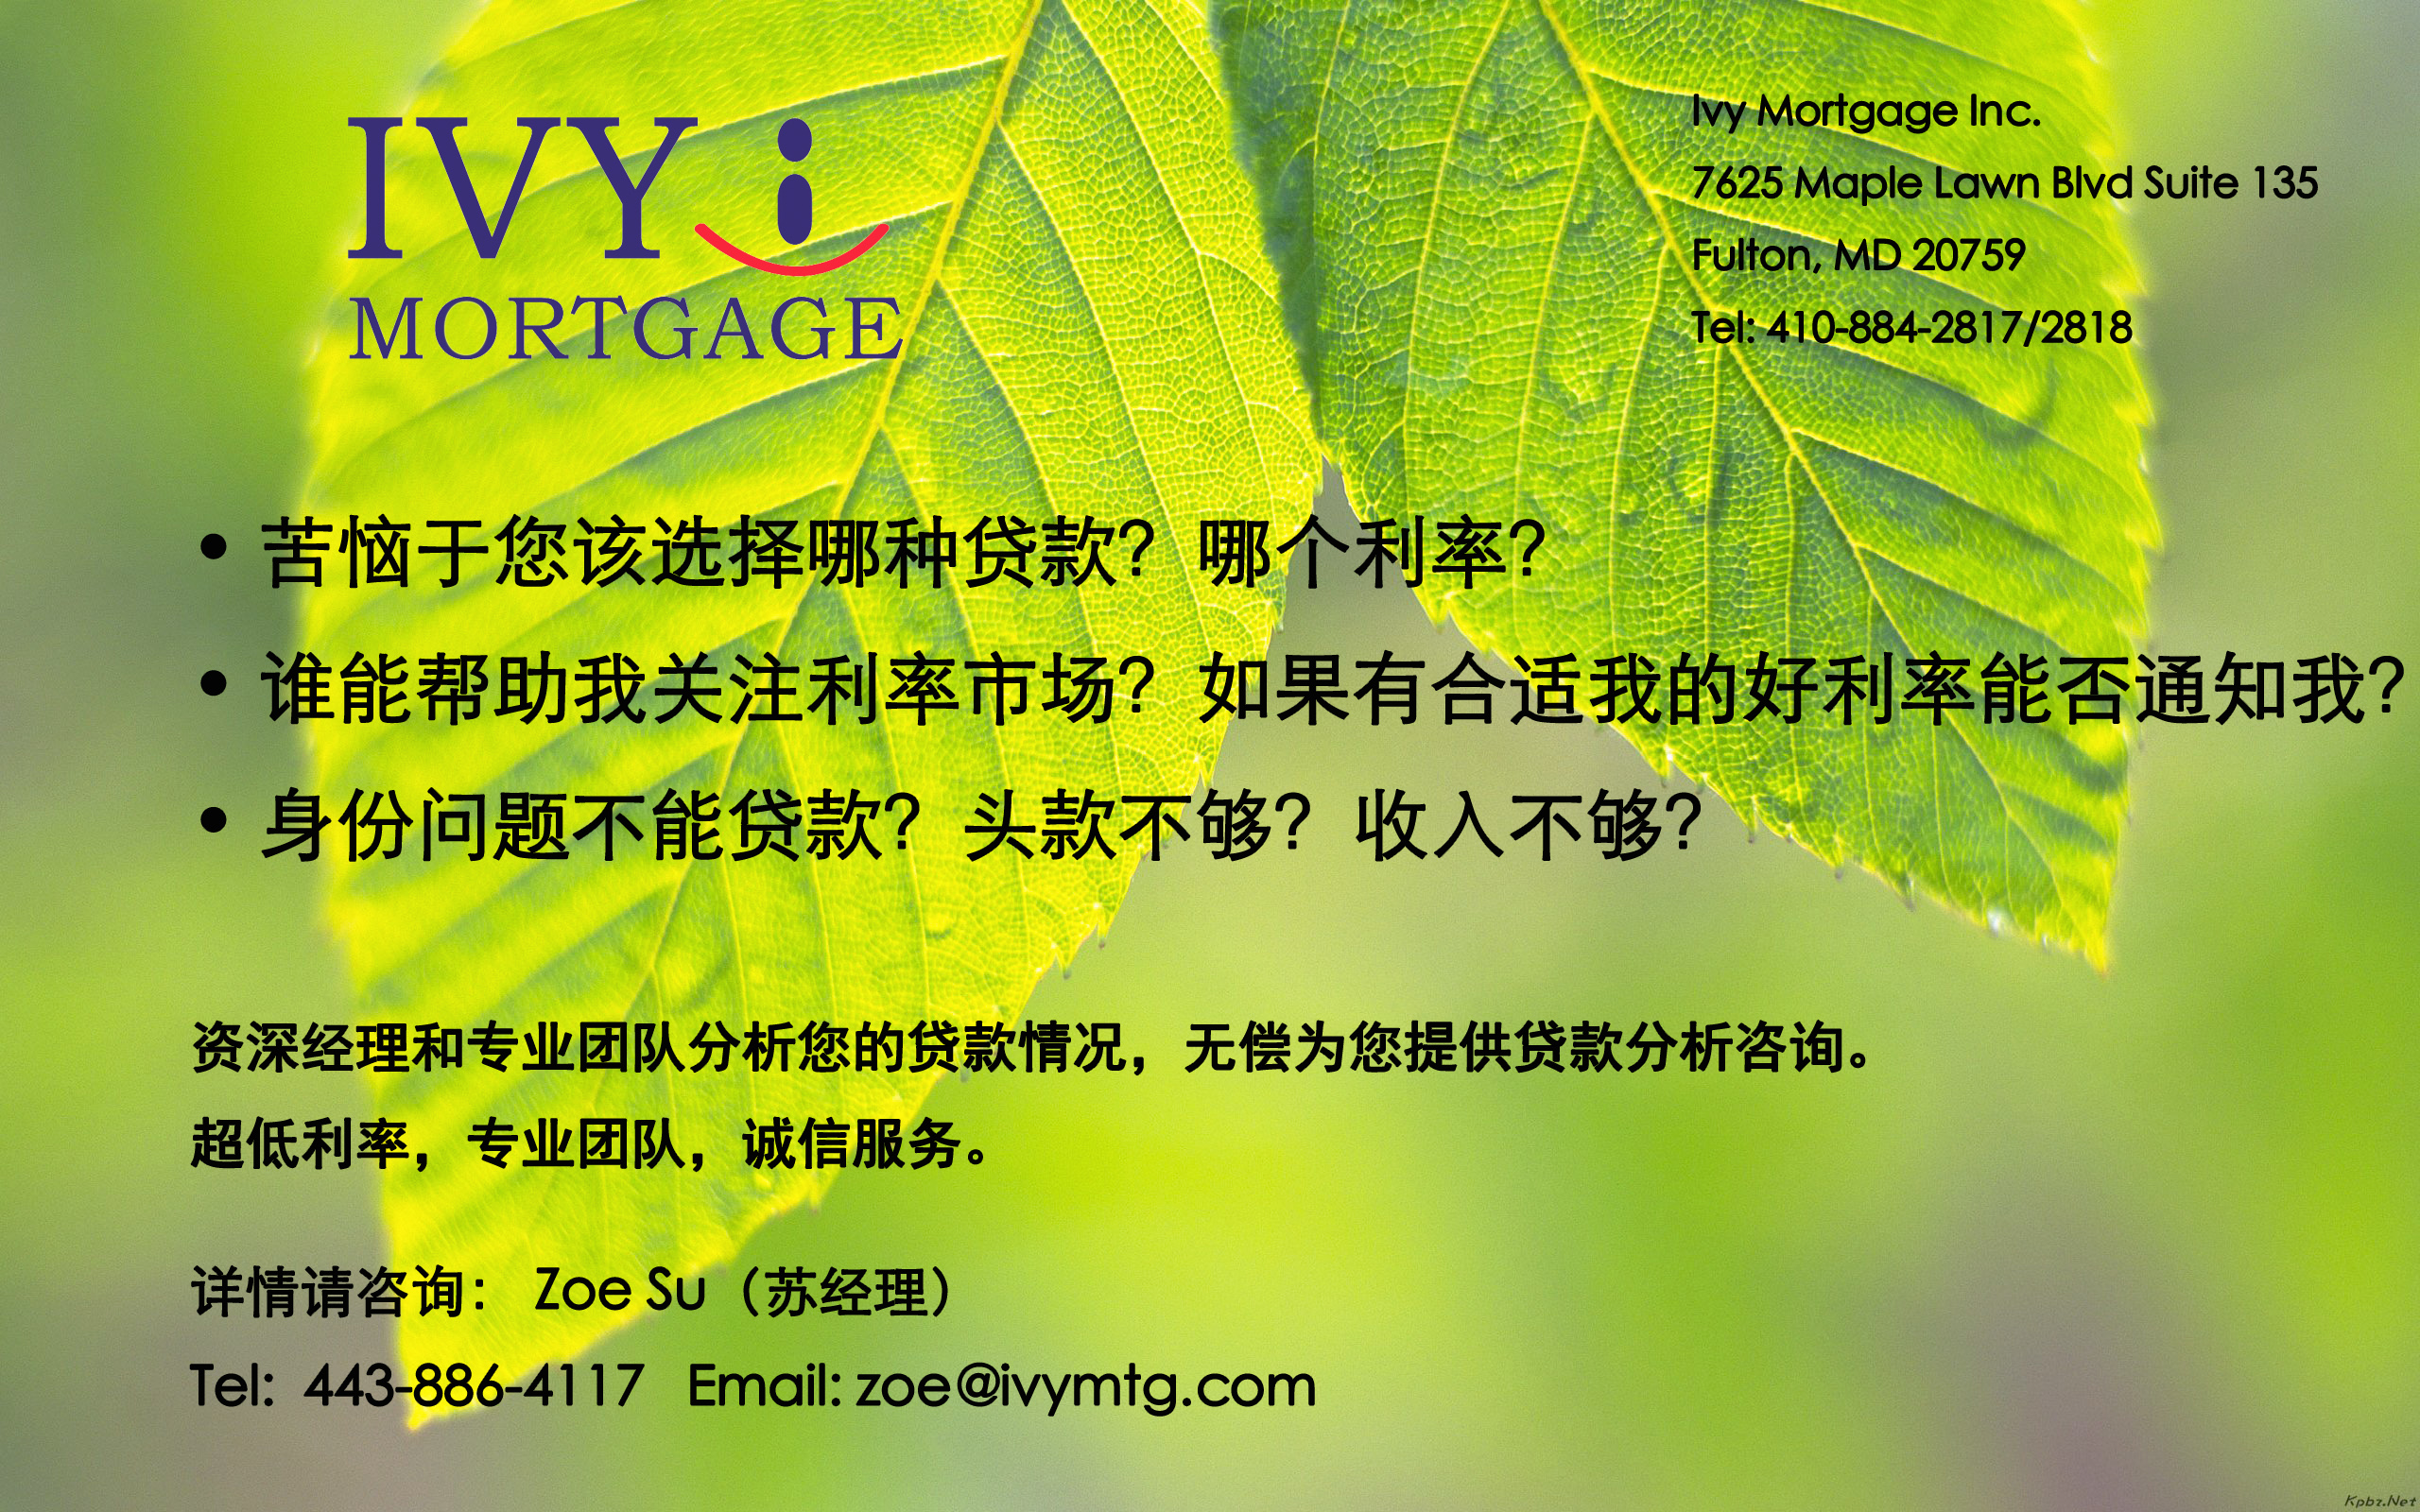 Ivy Mortgage